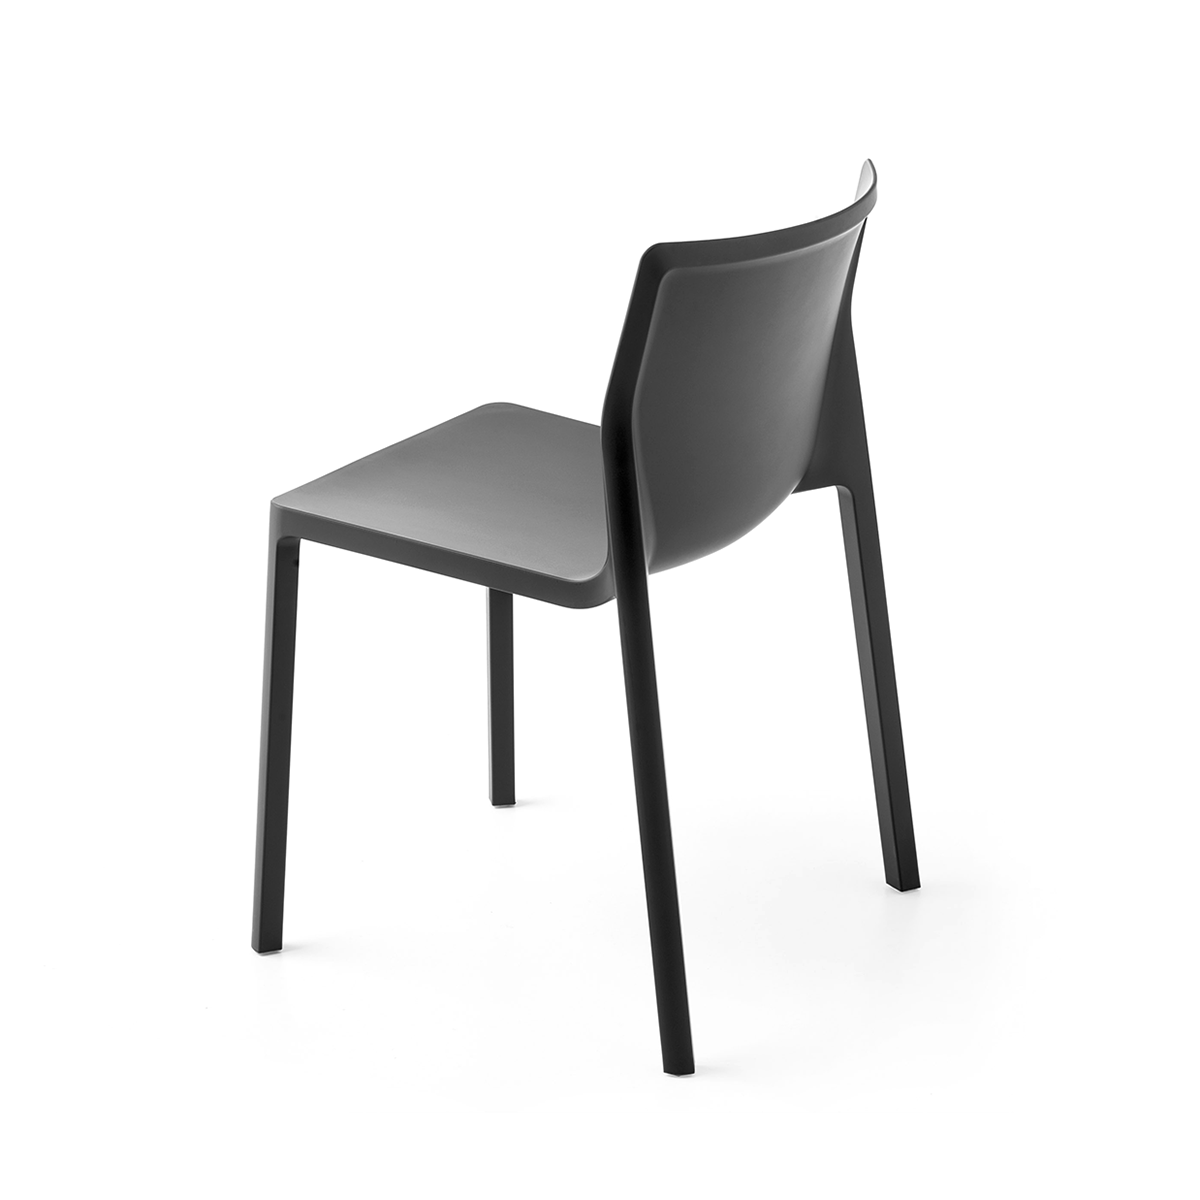 Kristalia LP Stackable Chair 輕盈 可堆疊 單椅